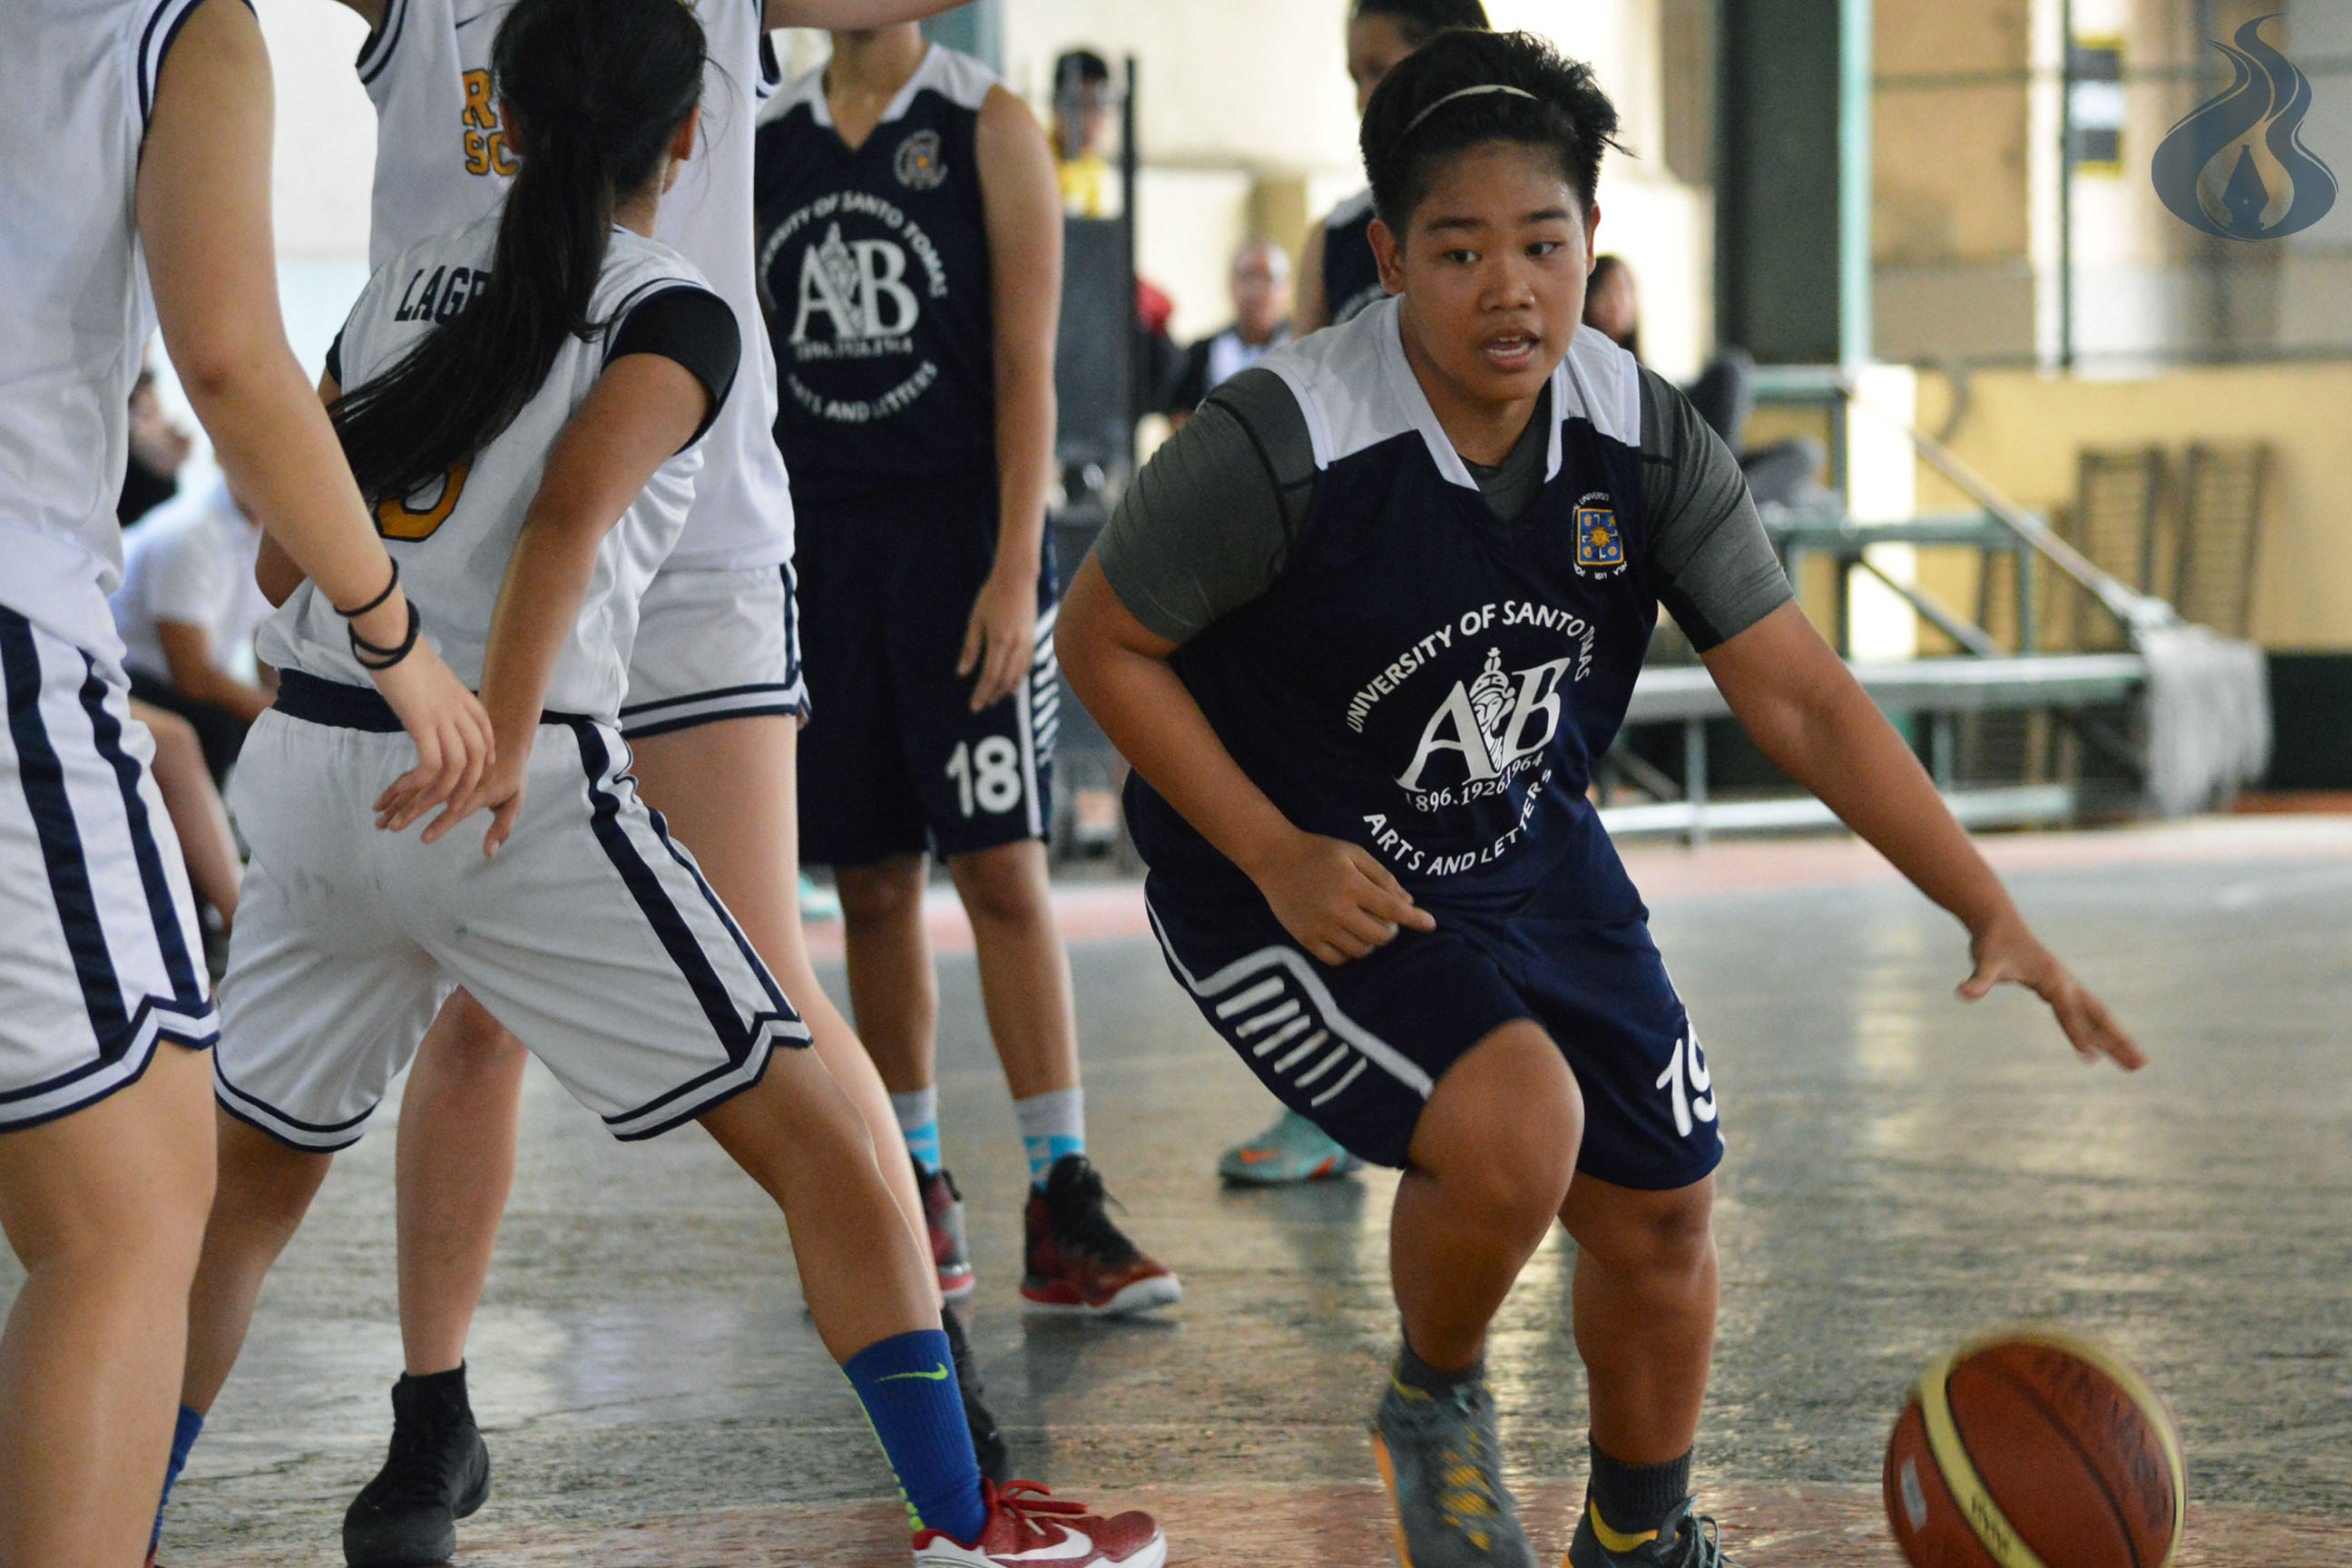 AB's star player Alaina Dimdam tries to penetrate CRS' defense. photo by JANINE C. PEREA